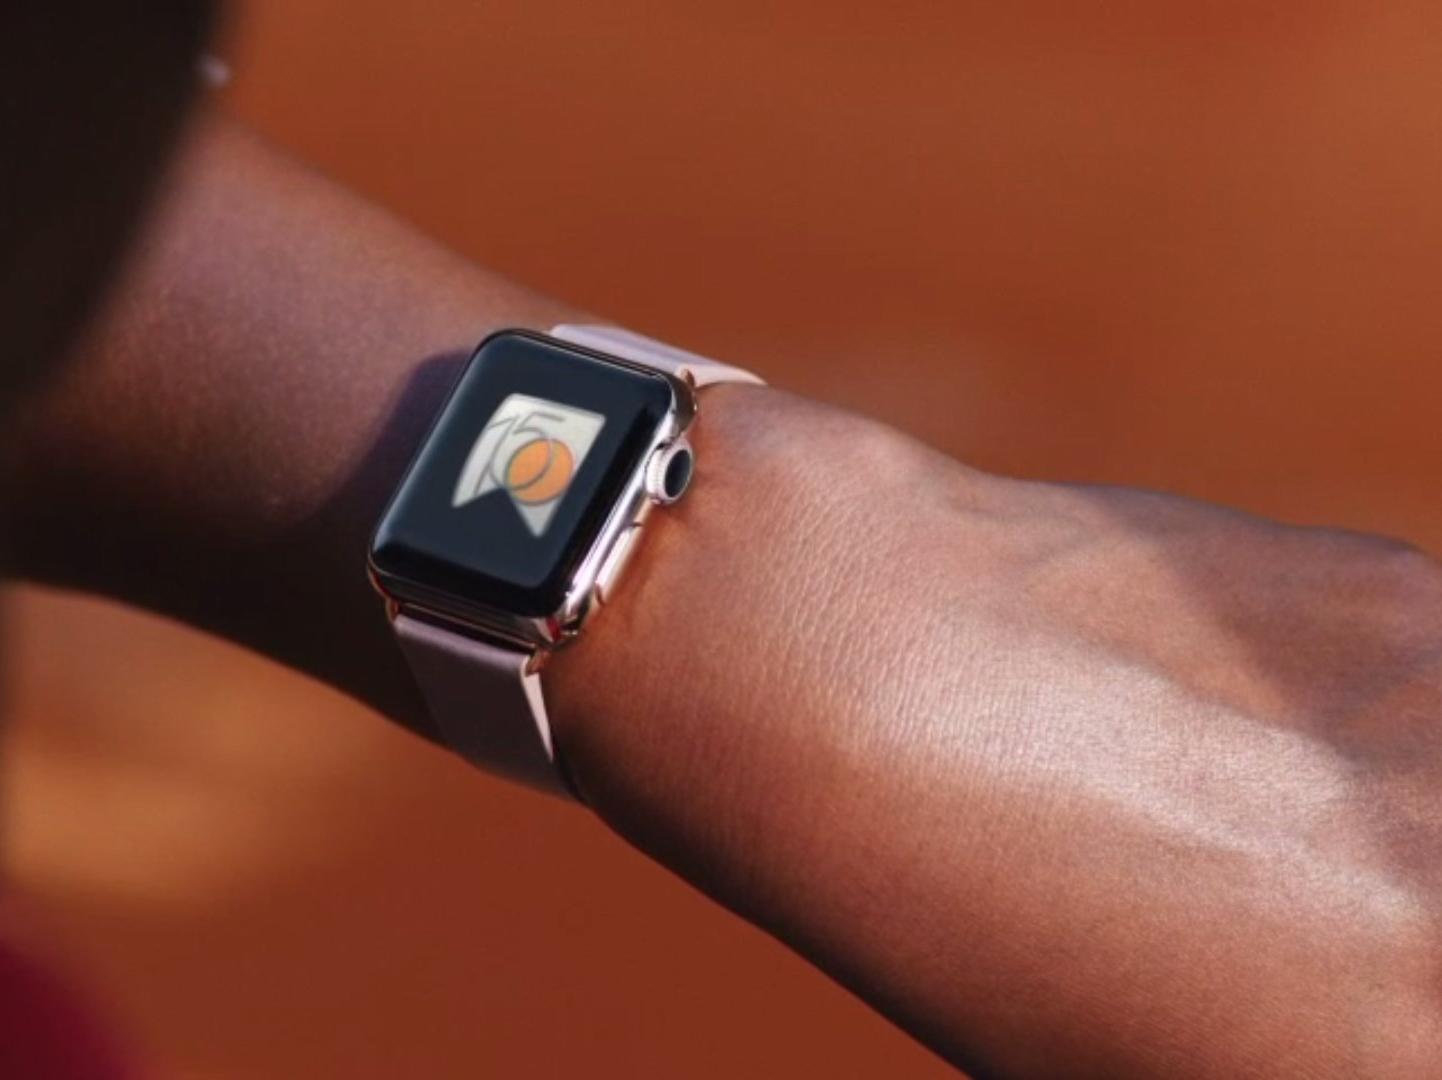 Apple supposedly assumes most customers have 'already decided they want an Apple Watch'